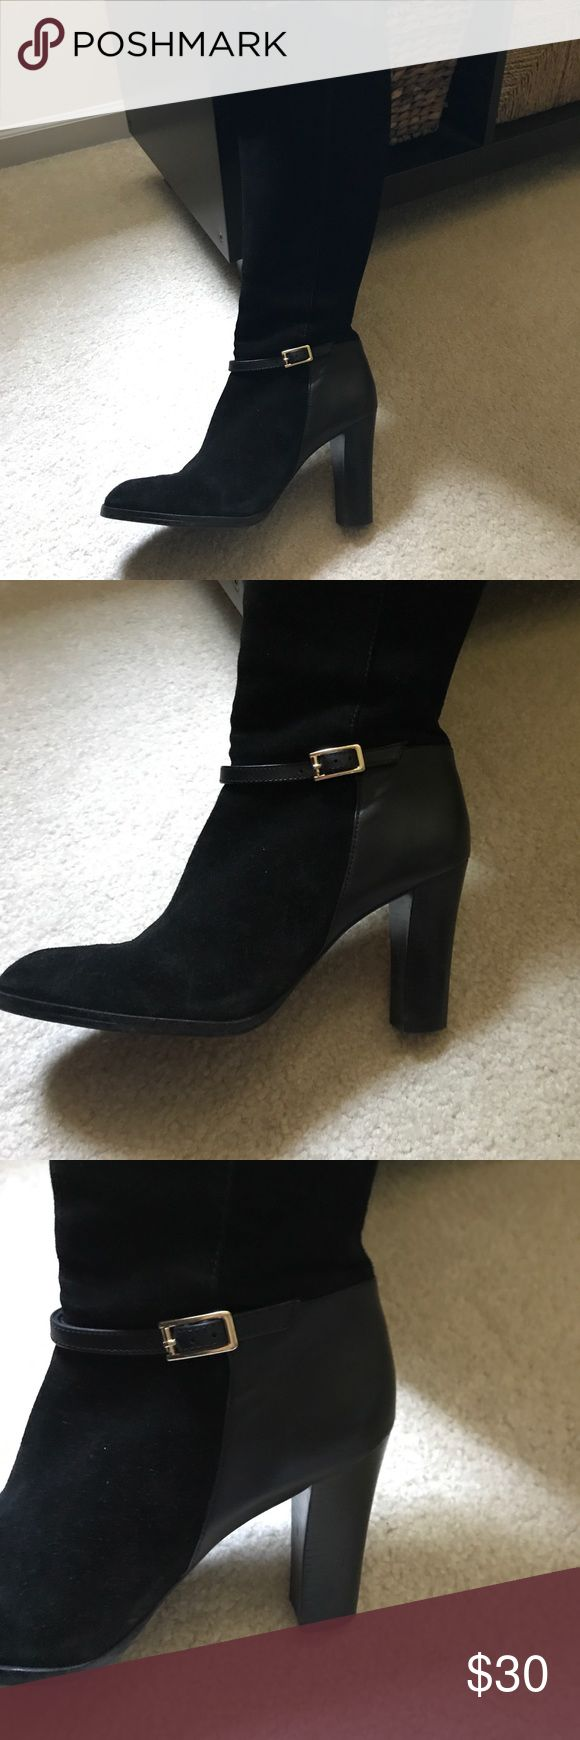 Beautiful black suede women's boots Slightly chunky 3 3/4 heel with beautiful gold side buckle.   Seldom worn.   Includes shoe trees to maintain beautiful shape. Banana Republic Shoes Heeled Boots